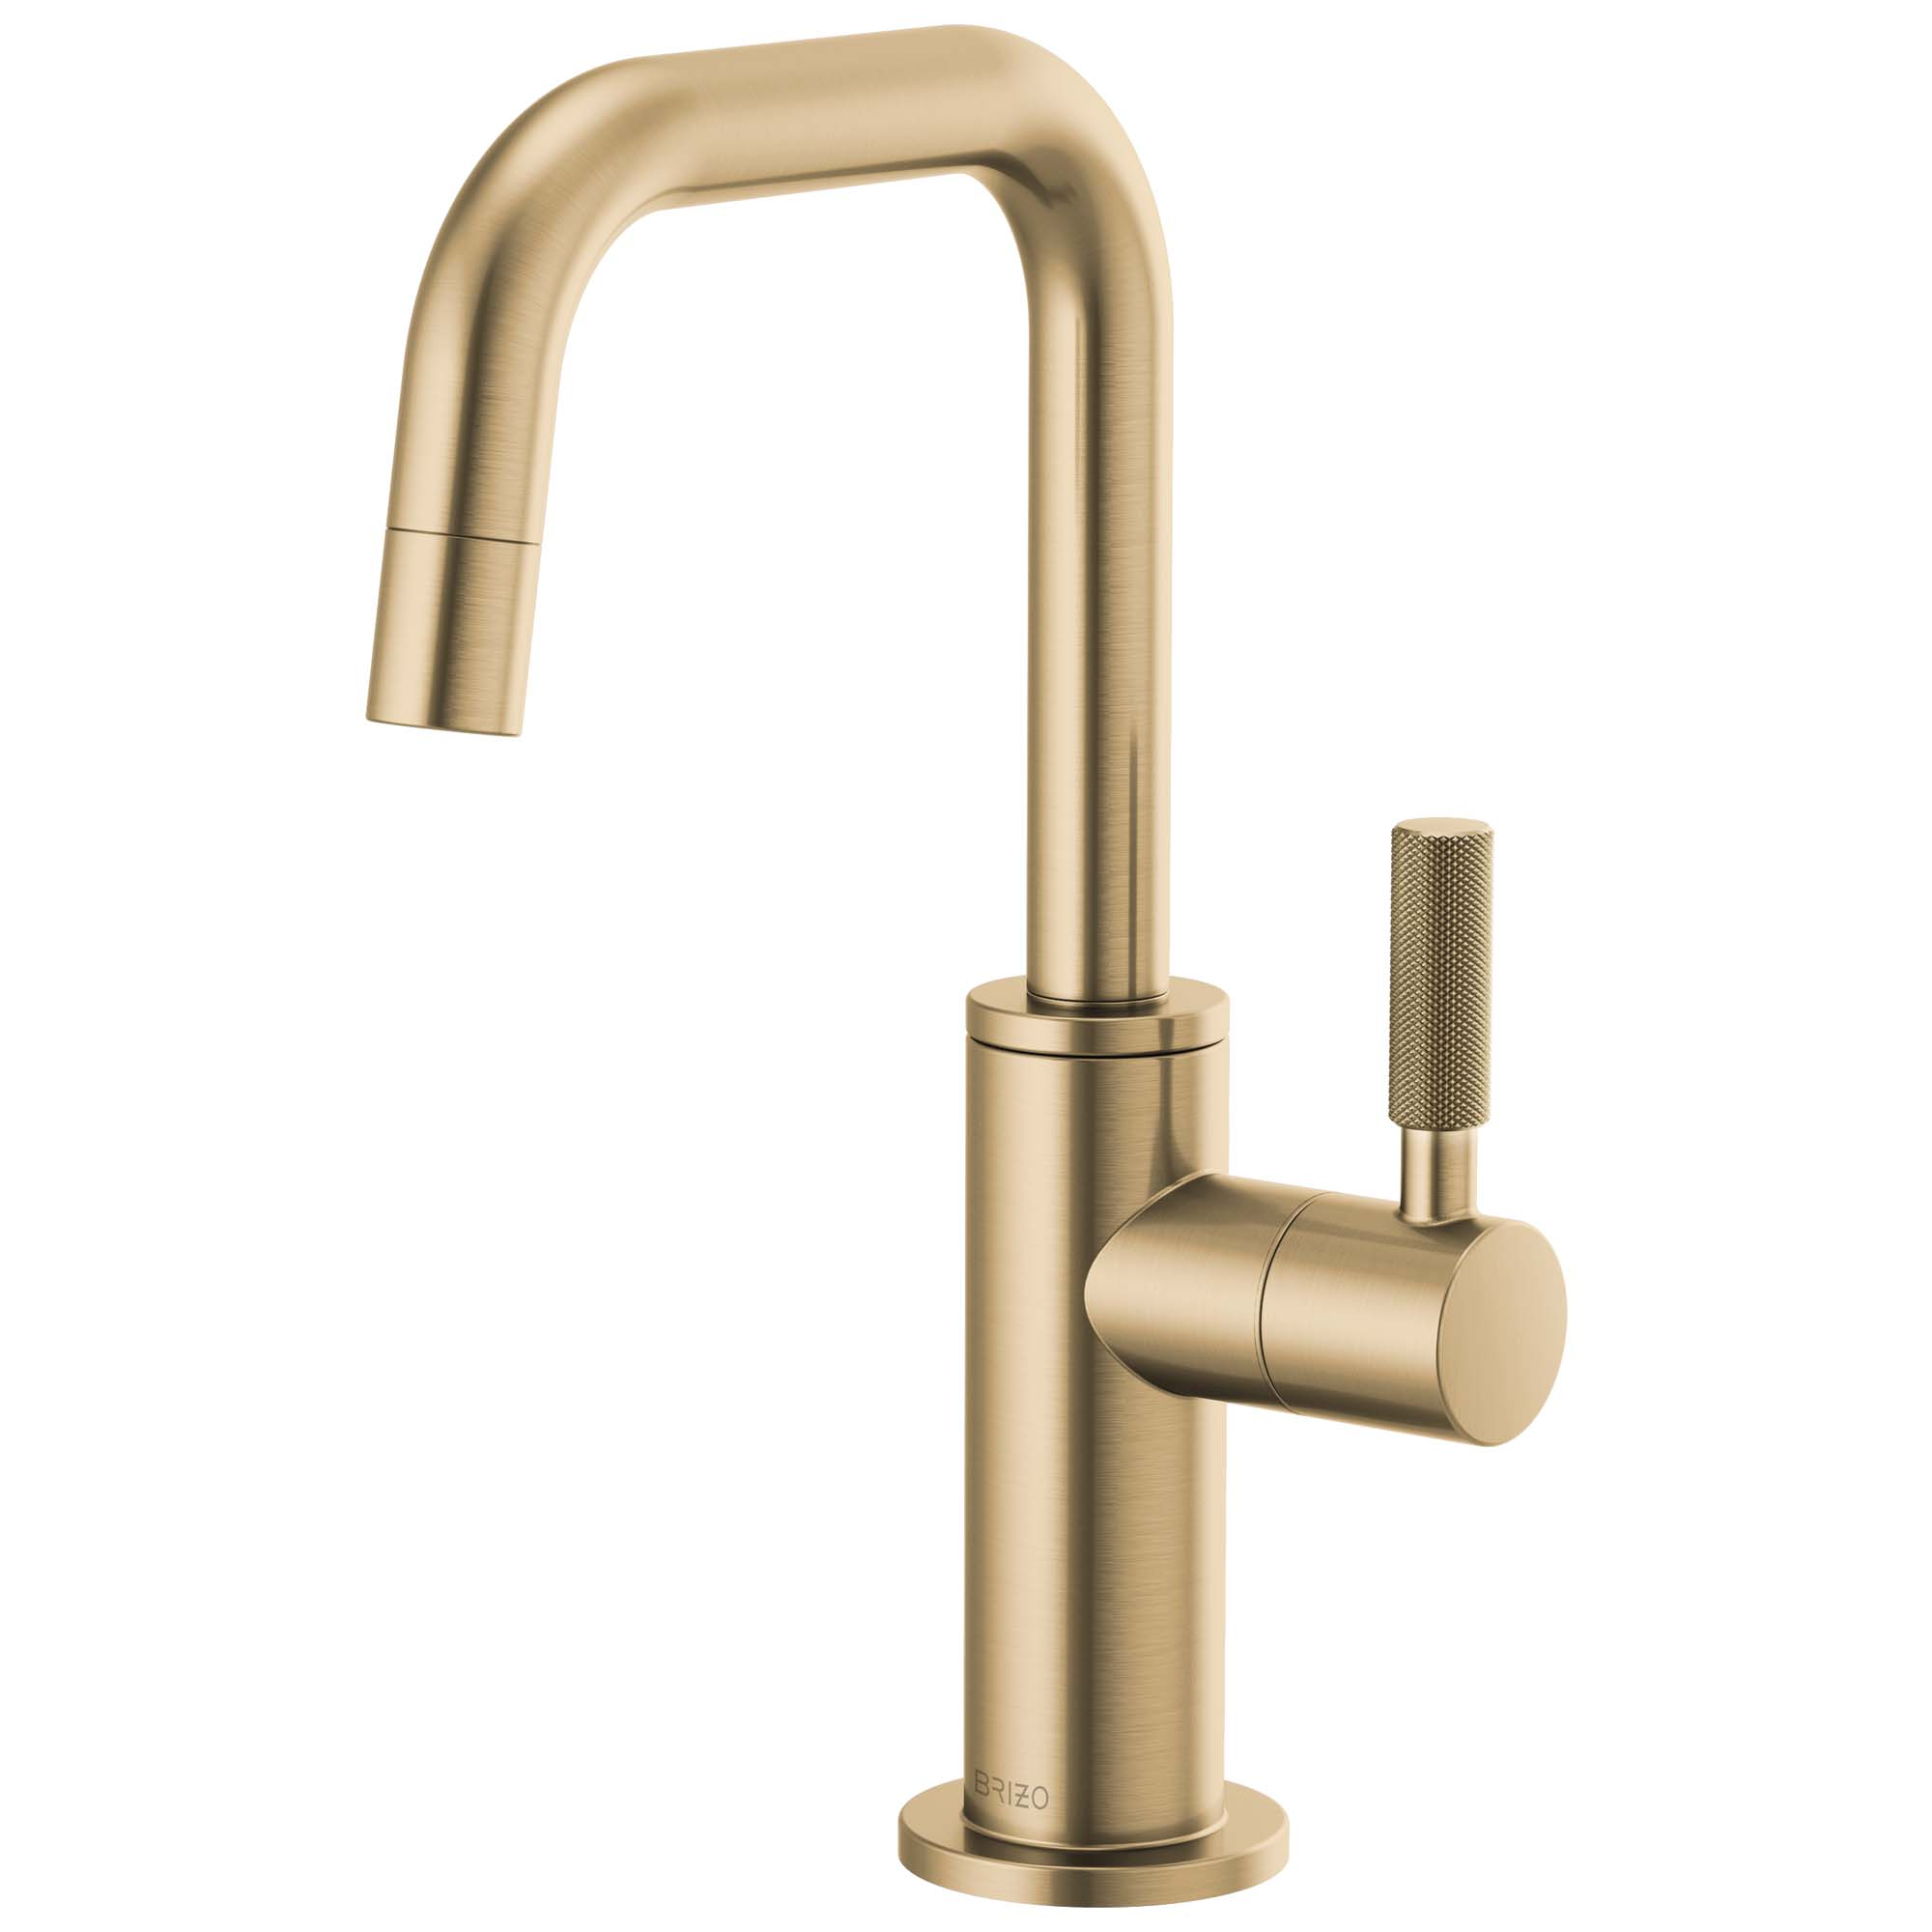 Brizo 61353LF-C-GL Litze Beverage Faucet with Square Spout and Knurled Handle - Luxe Gold